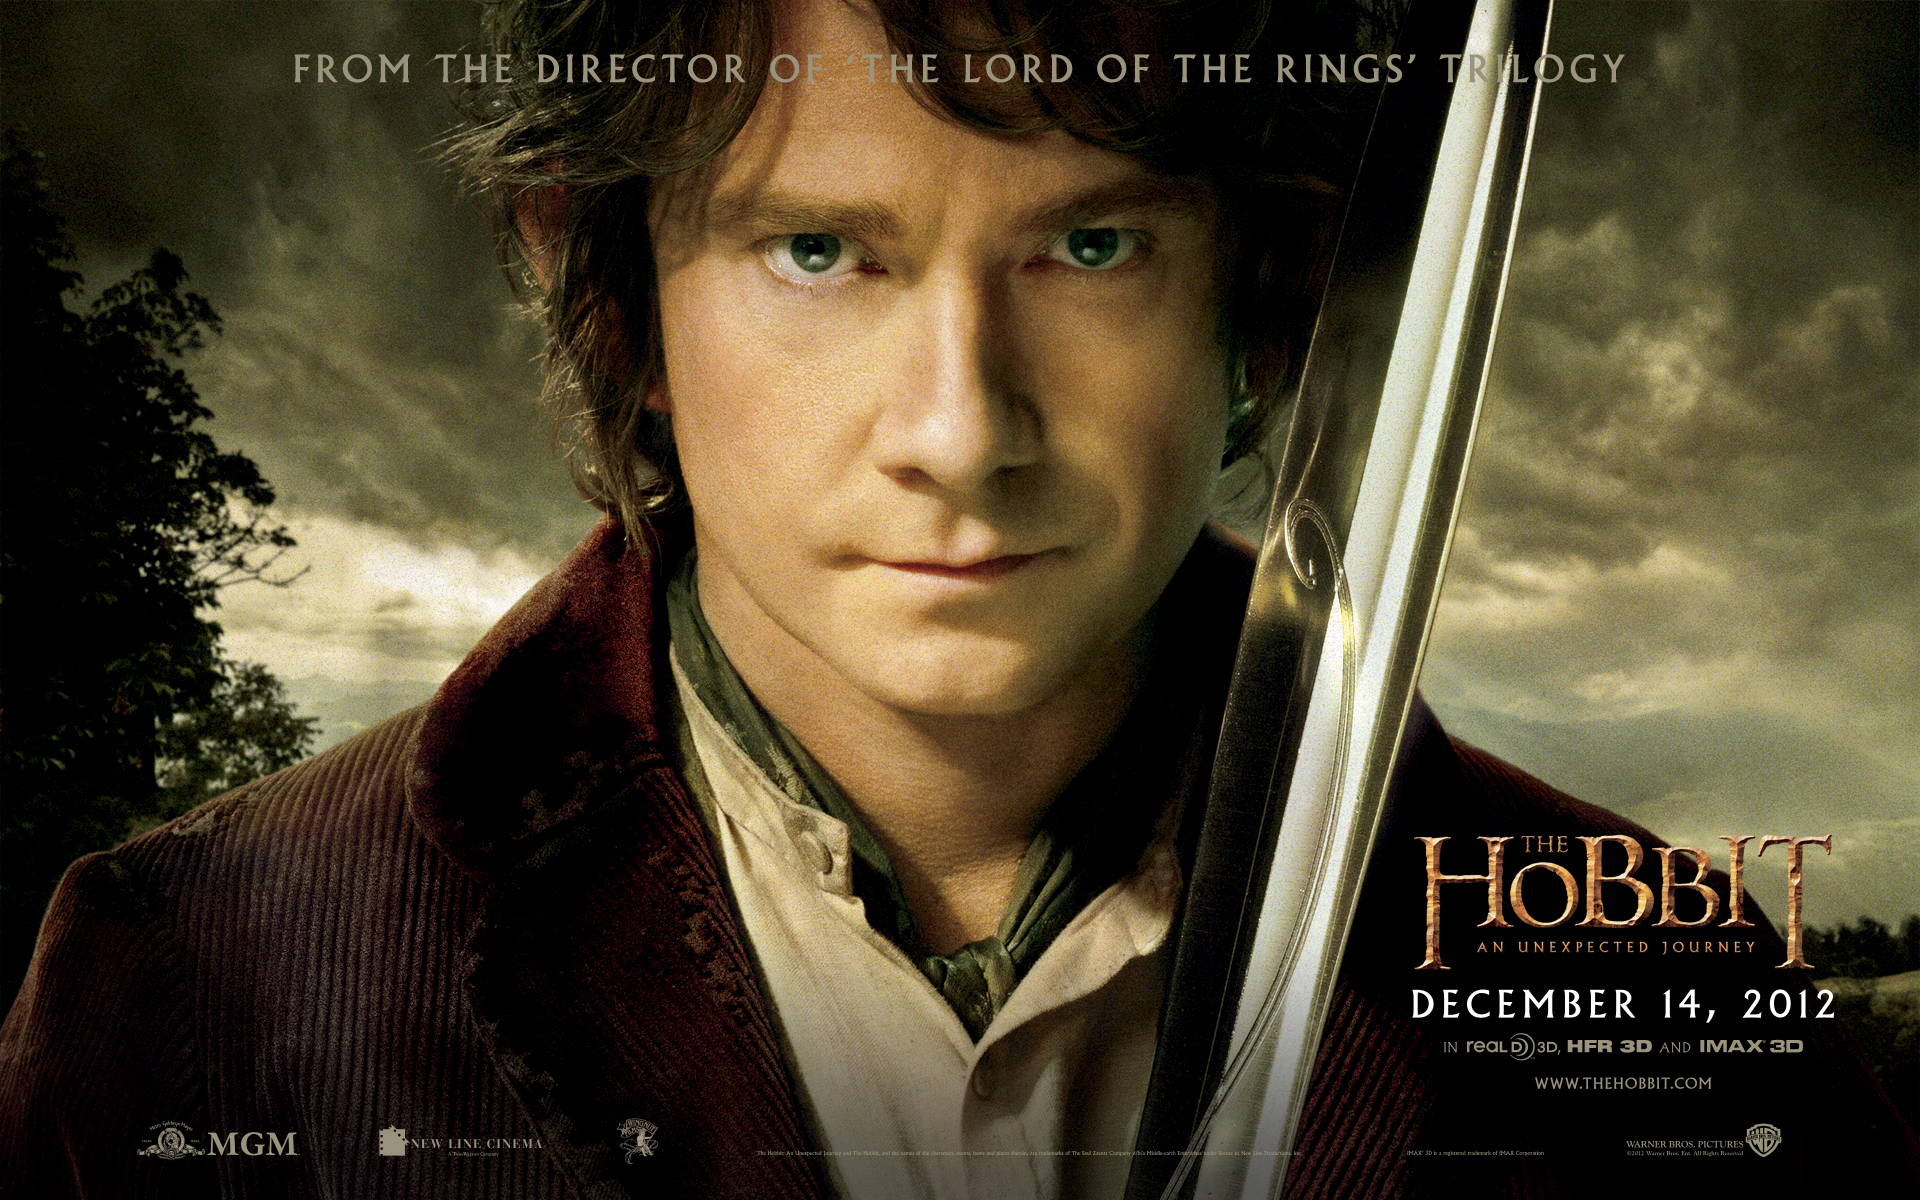 The Hobbit hq wallpapers (2)